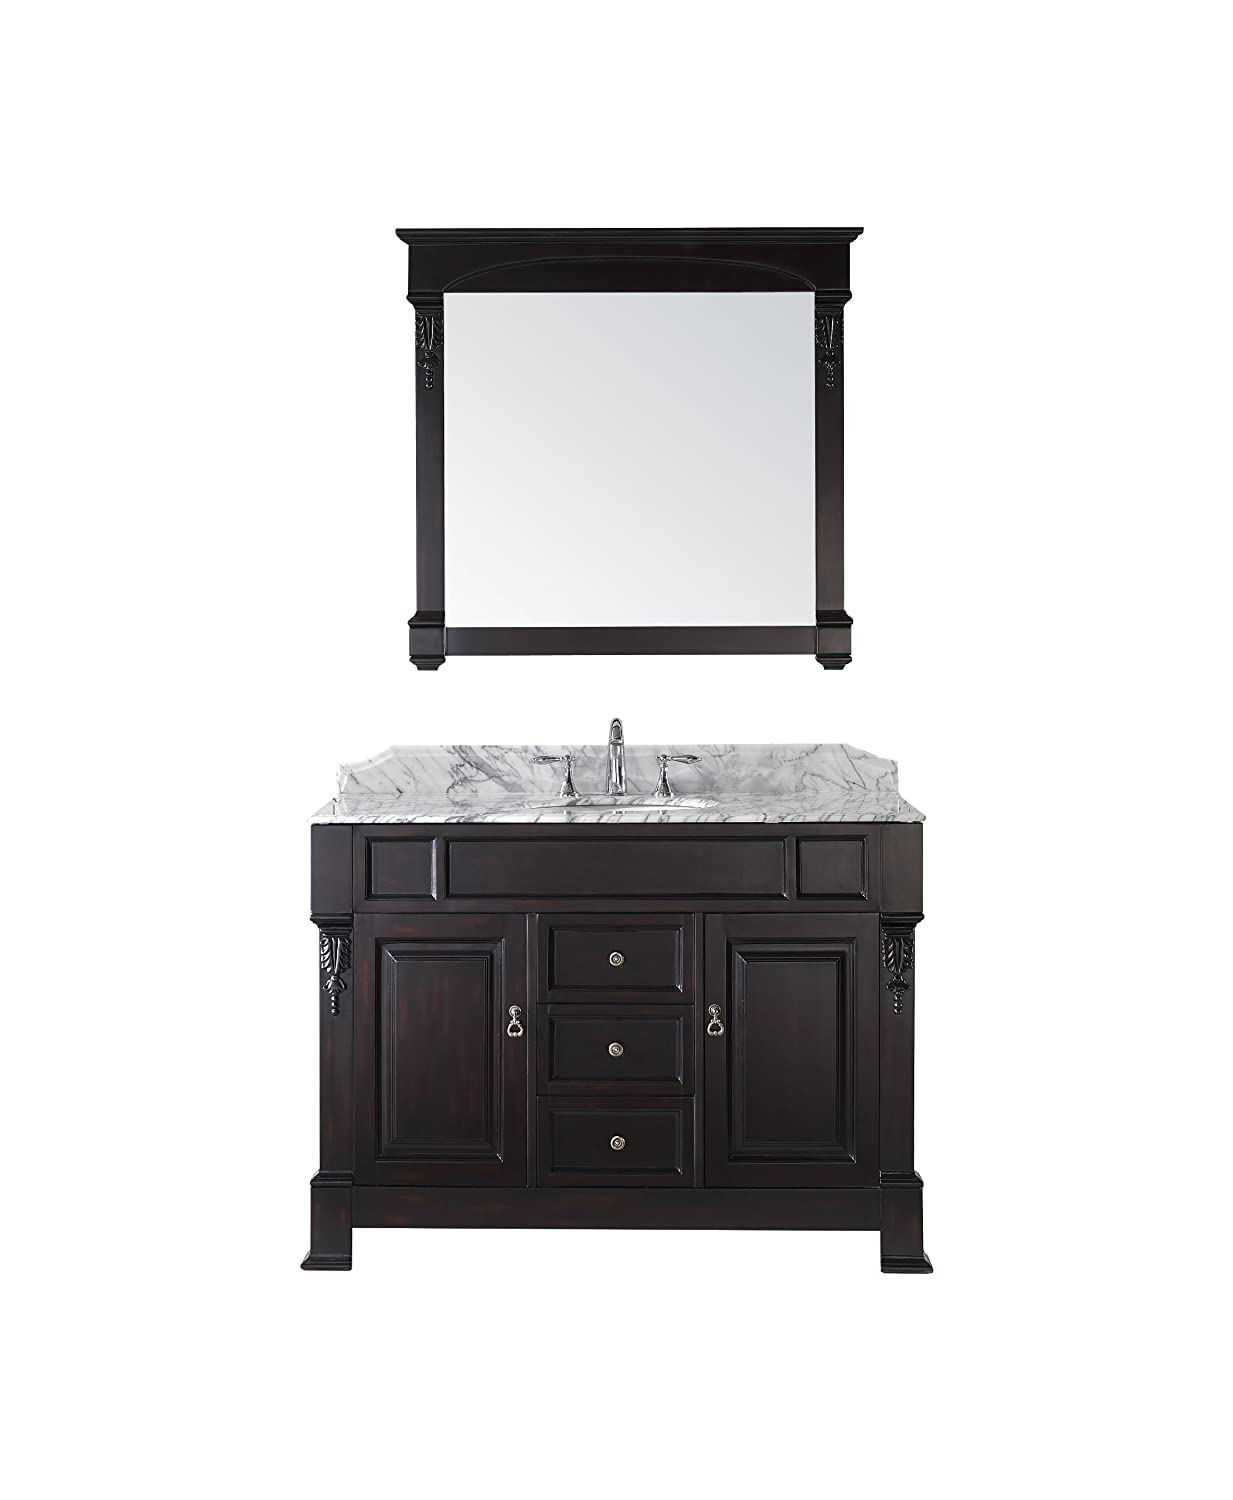 good Virtu USA GS-4048-WMRO-DW Huntshire 48-Inch Single Sink Bathroom Vanity with Mirror and Ceramic Basin, Dark Walnut Finish